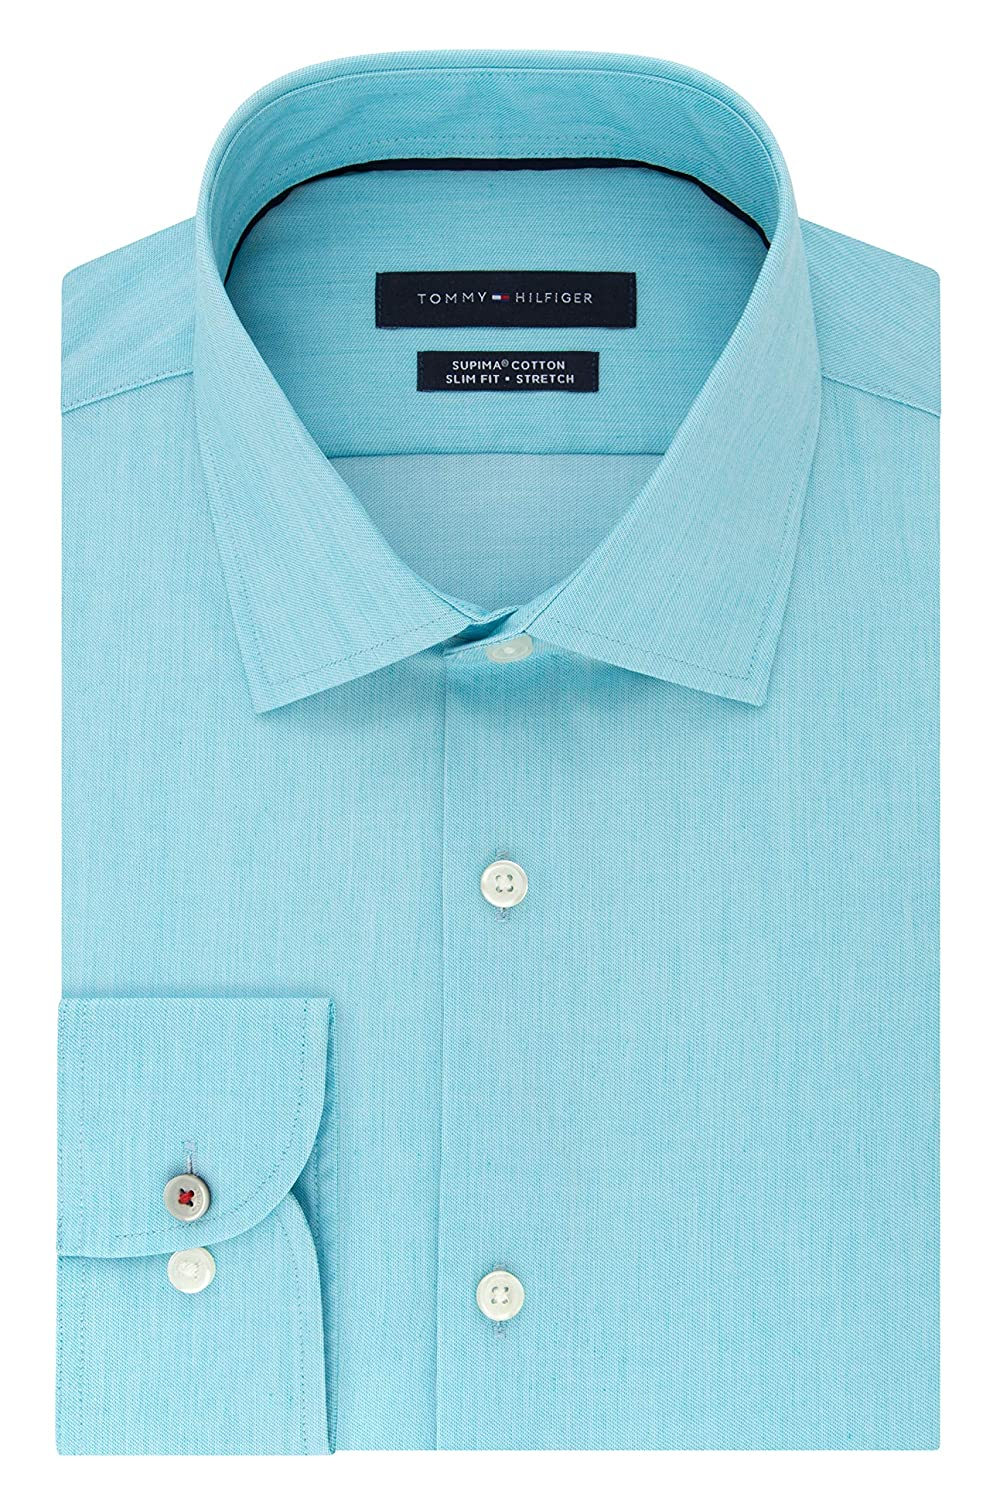 448c26543 Tommy Hilfiger Men's Dress Shirt Stretch Slim Fit Solid at Amazon Men's  Clothing store: